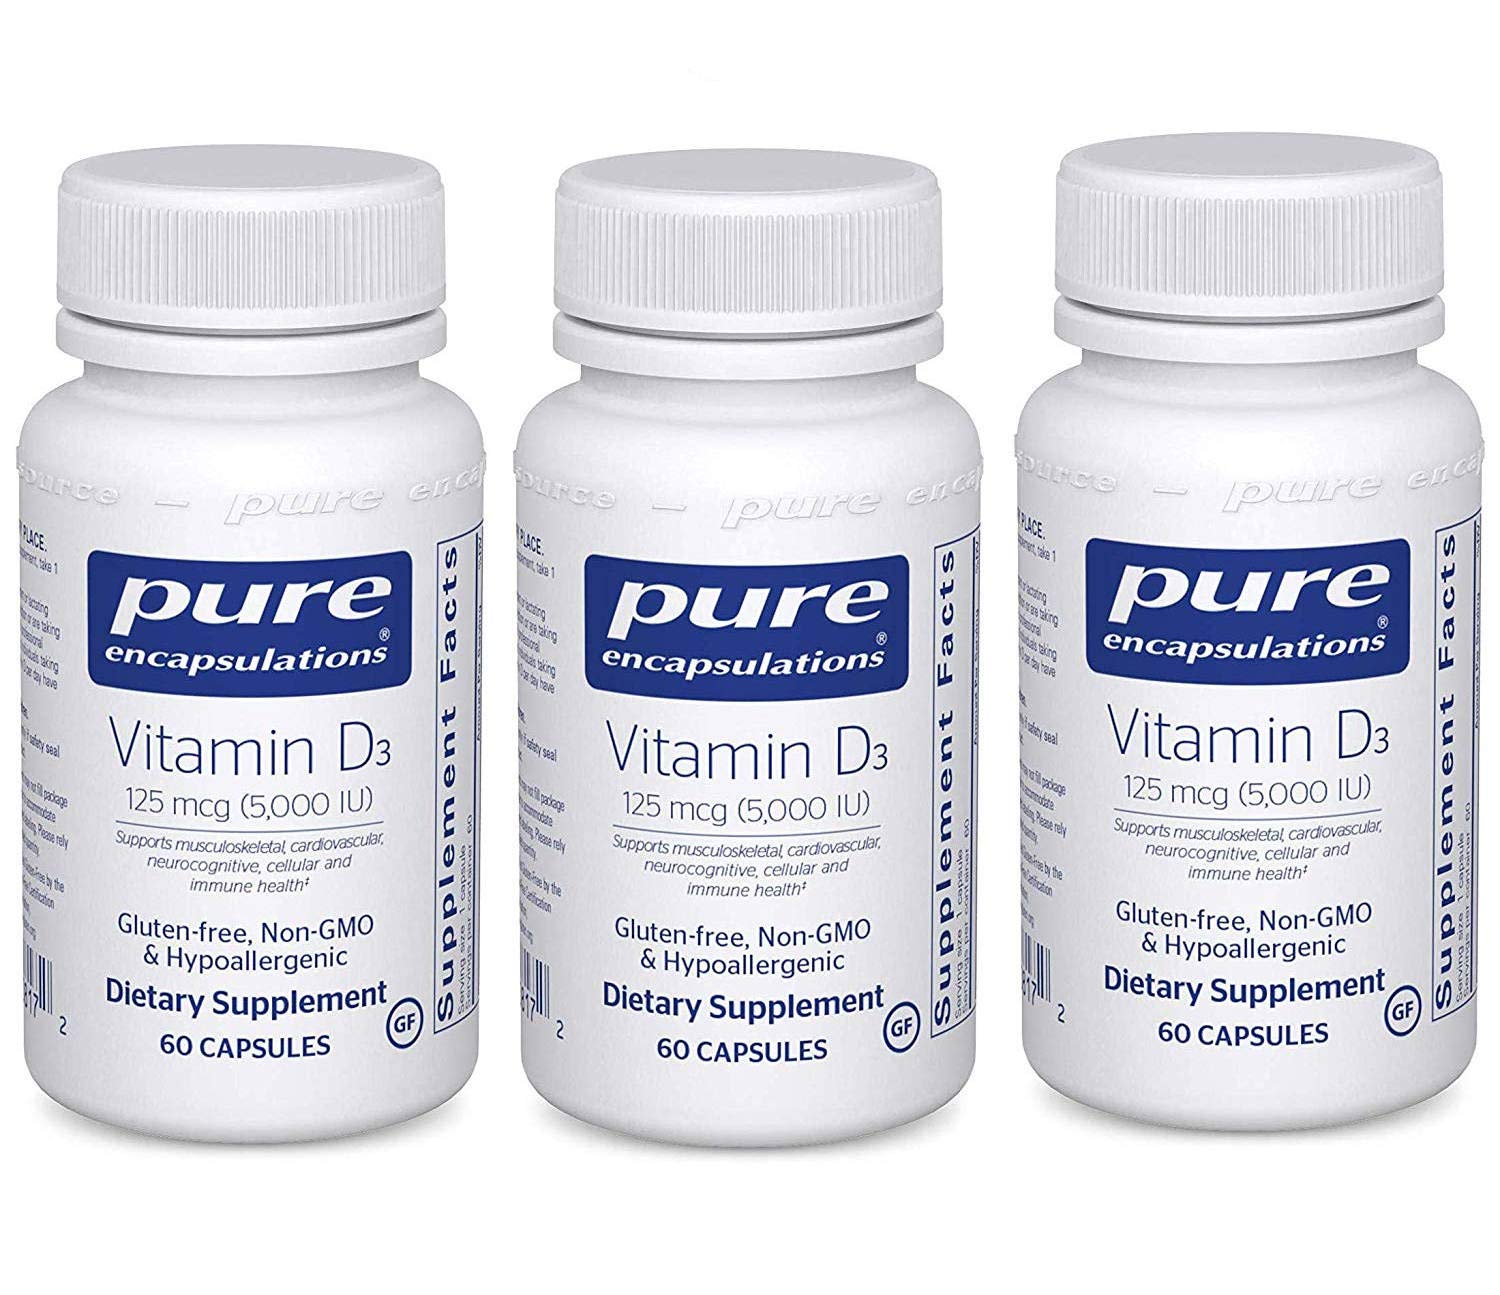 Pure Encapsulations Vitamin D3 5,000 IU Supports Musculoskeletal, Cardiovascular, Neurocognitive, Cellular and Immune Health (60 Capsules) Pack of 3